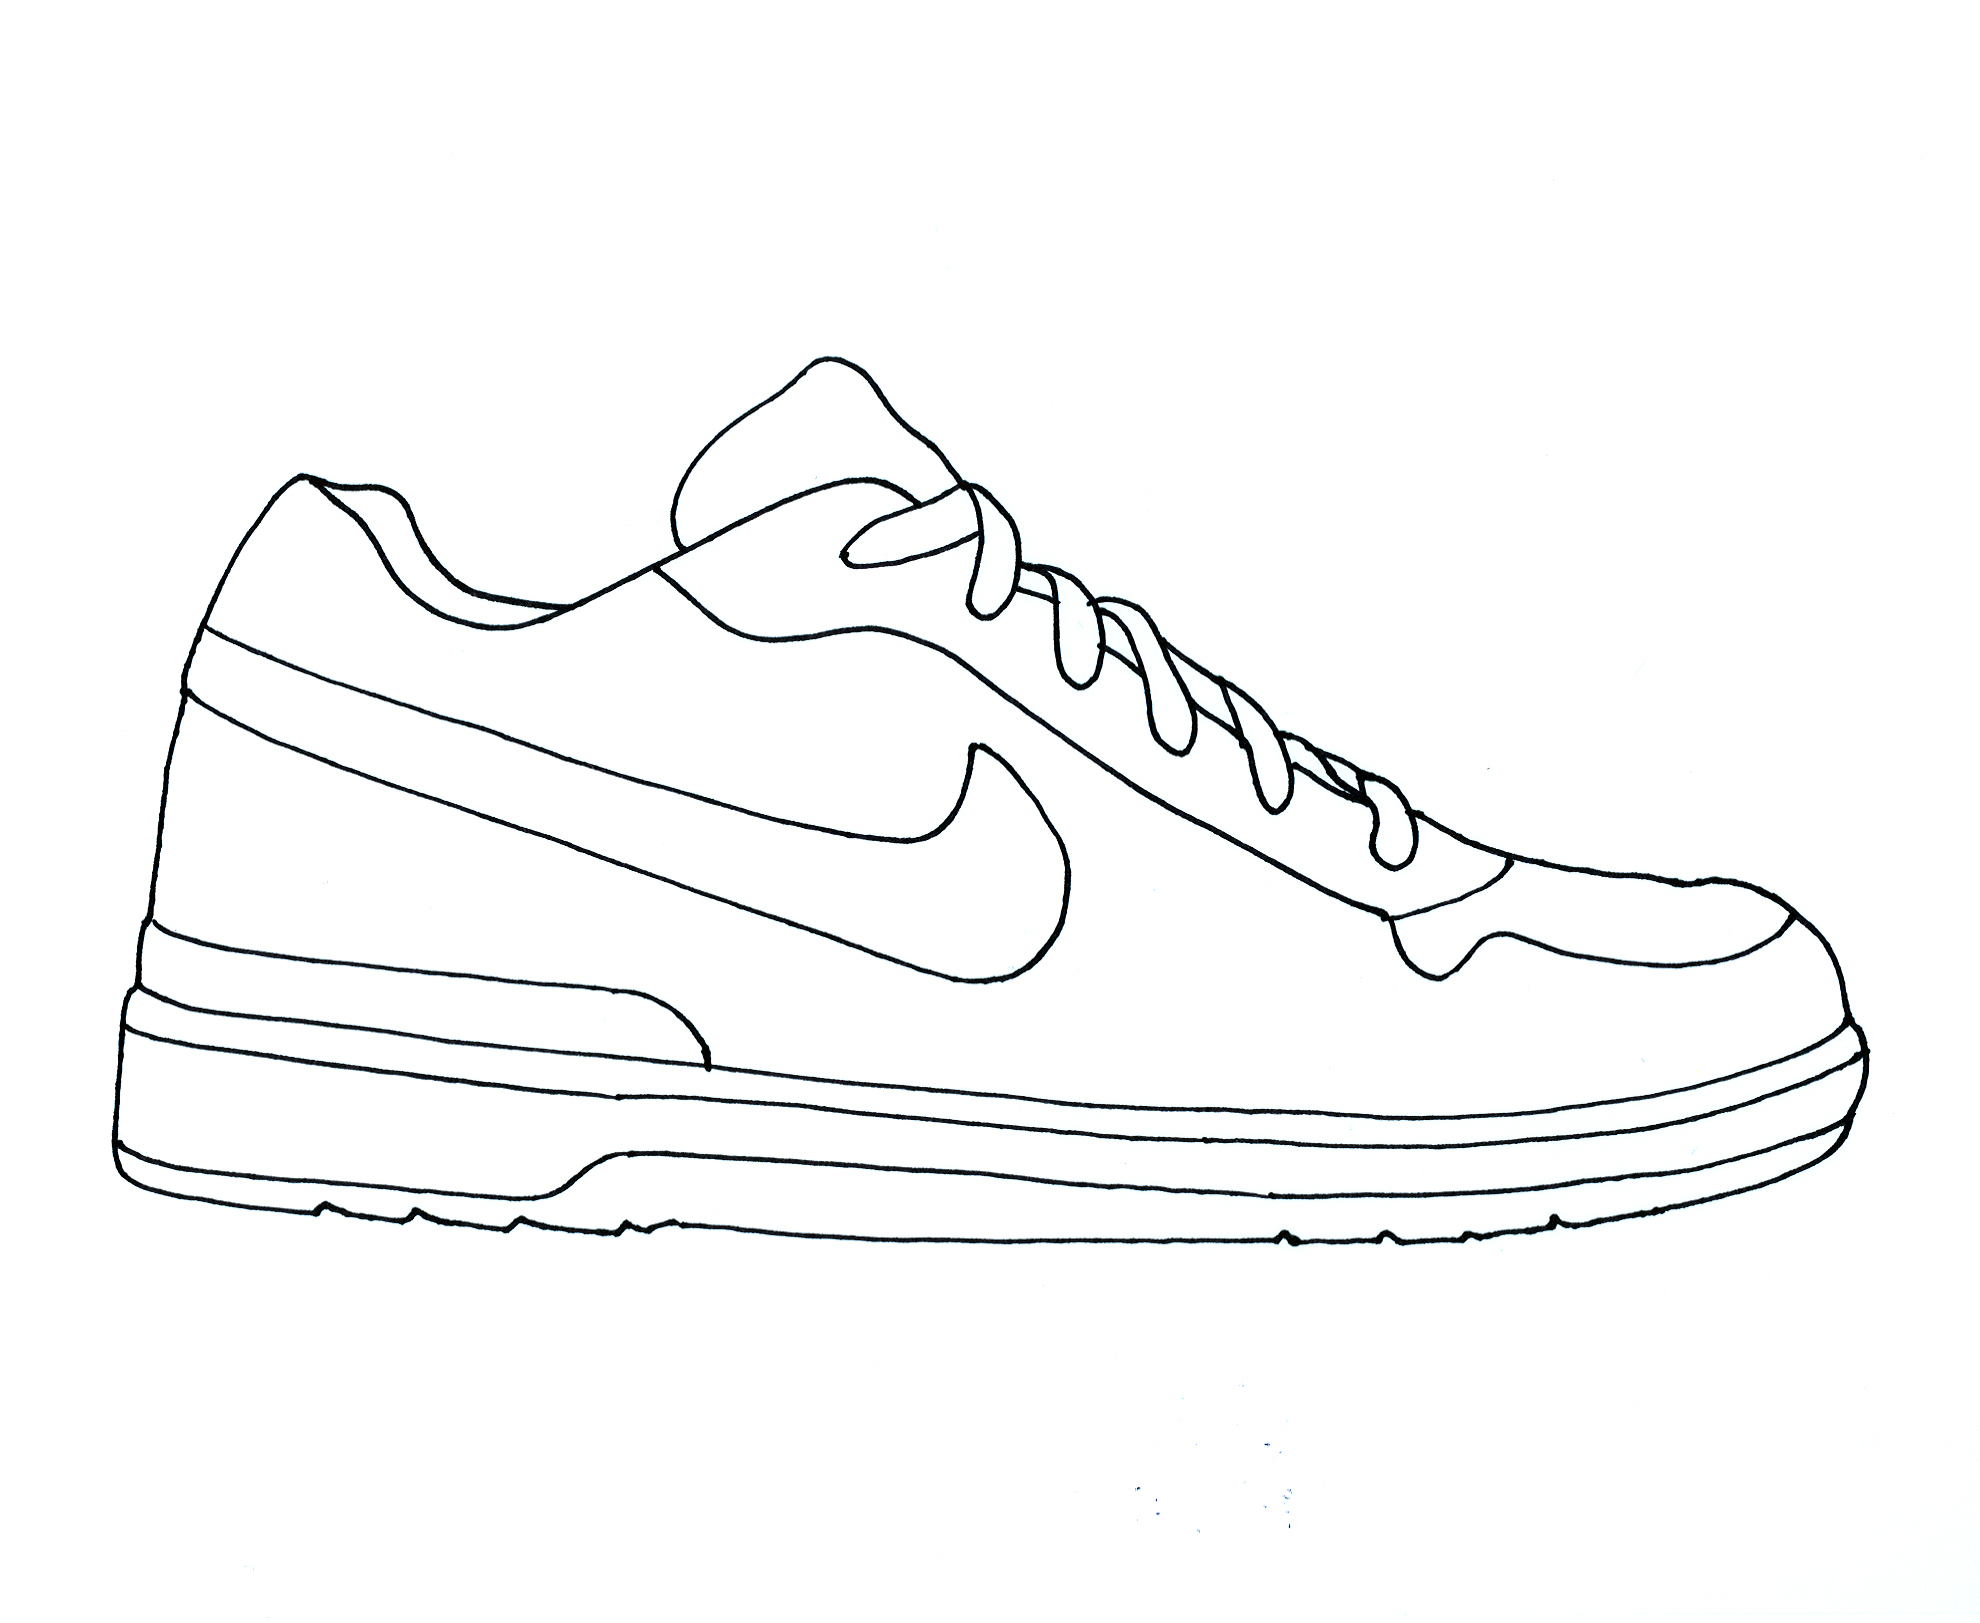 Drawn shoe Brands Nike Nike Best Air